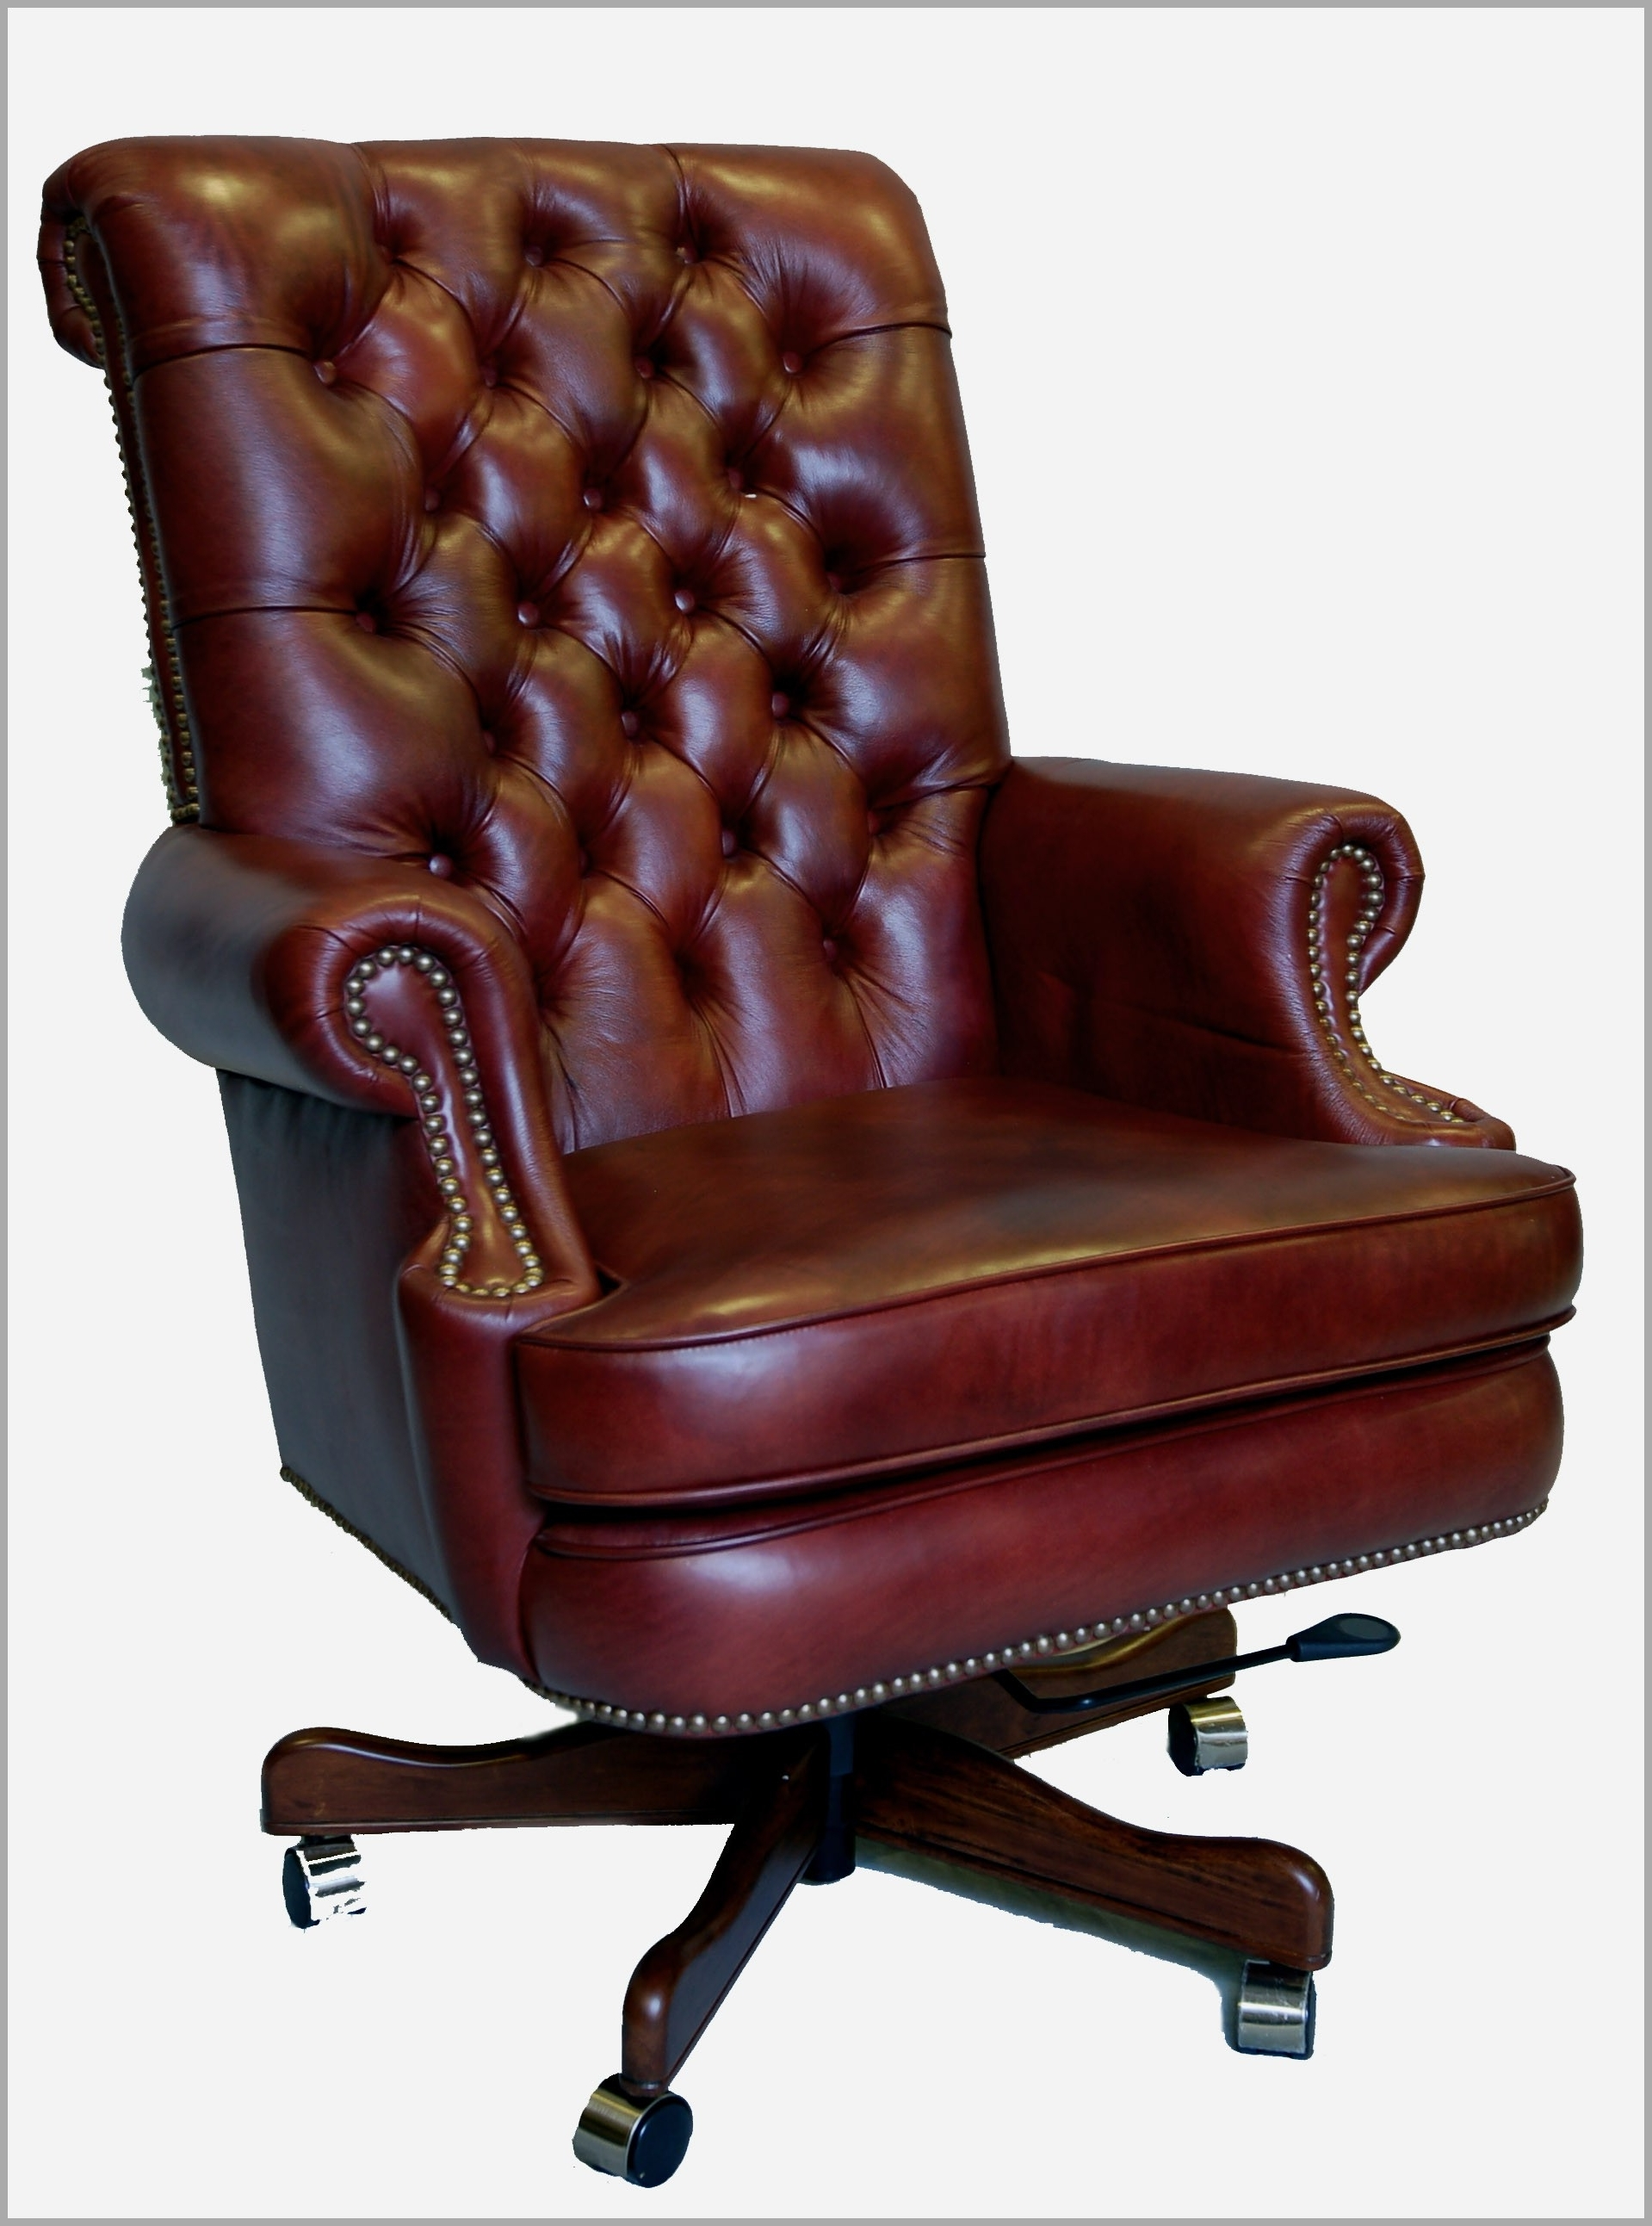 Wood And Leather Executive Office Chairs For 2019 Chair : Office Star Leather Executive Office Chair Niceday Berlin (View 15 of 20)